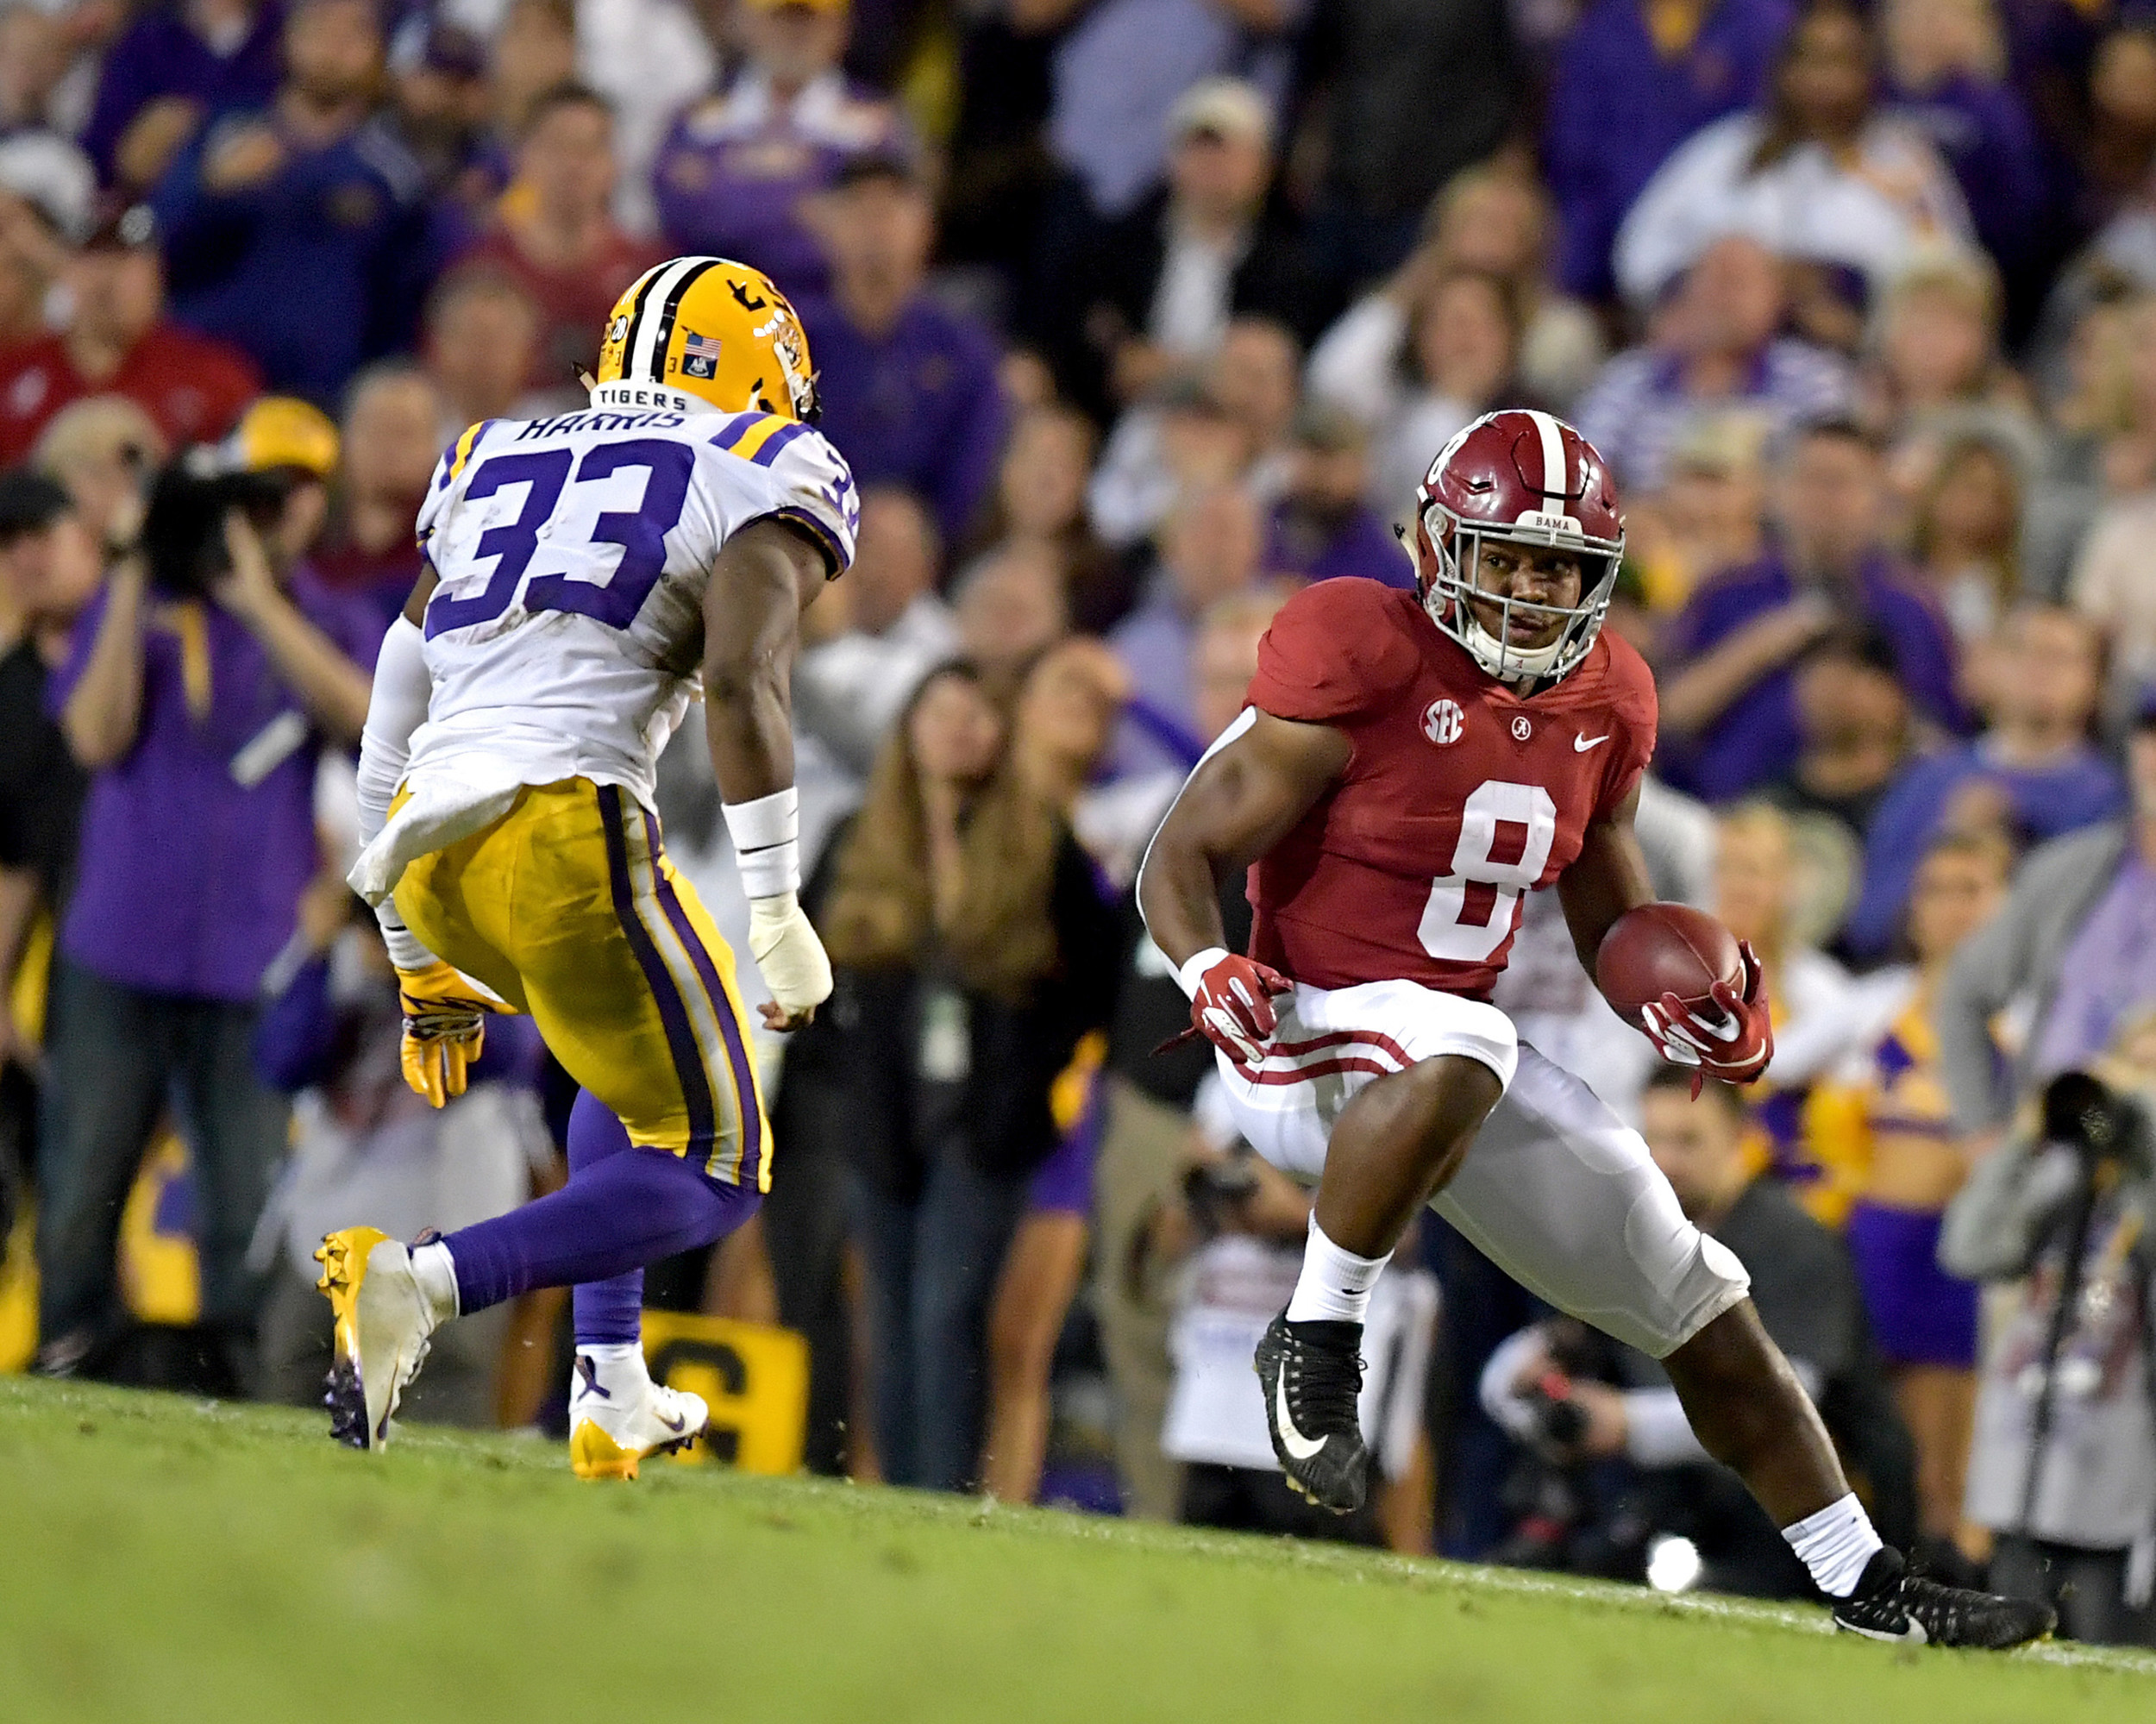 Alabama Crimson Tide running back Josh Jacobs (8) prepares to switch direction to avoid a tackle by LSU Tigers safety Todd Harris Jr. (33) in the first half of an NCAA football game Saturday, November 3, 2018, at Tiger Stadium in Baton Rouge, La.  Alabama wins 29-0. (Photo by Lee Walls)